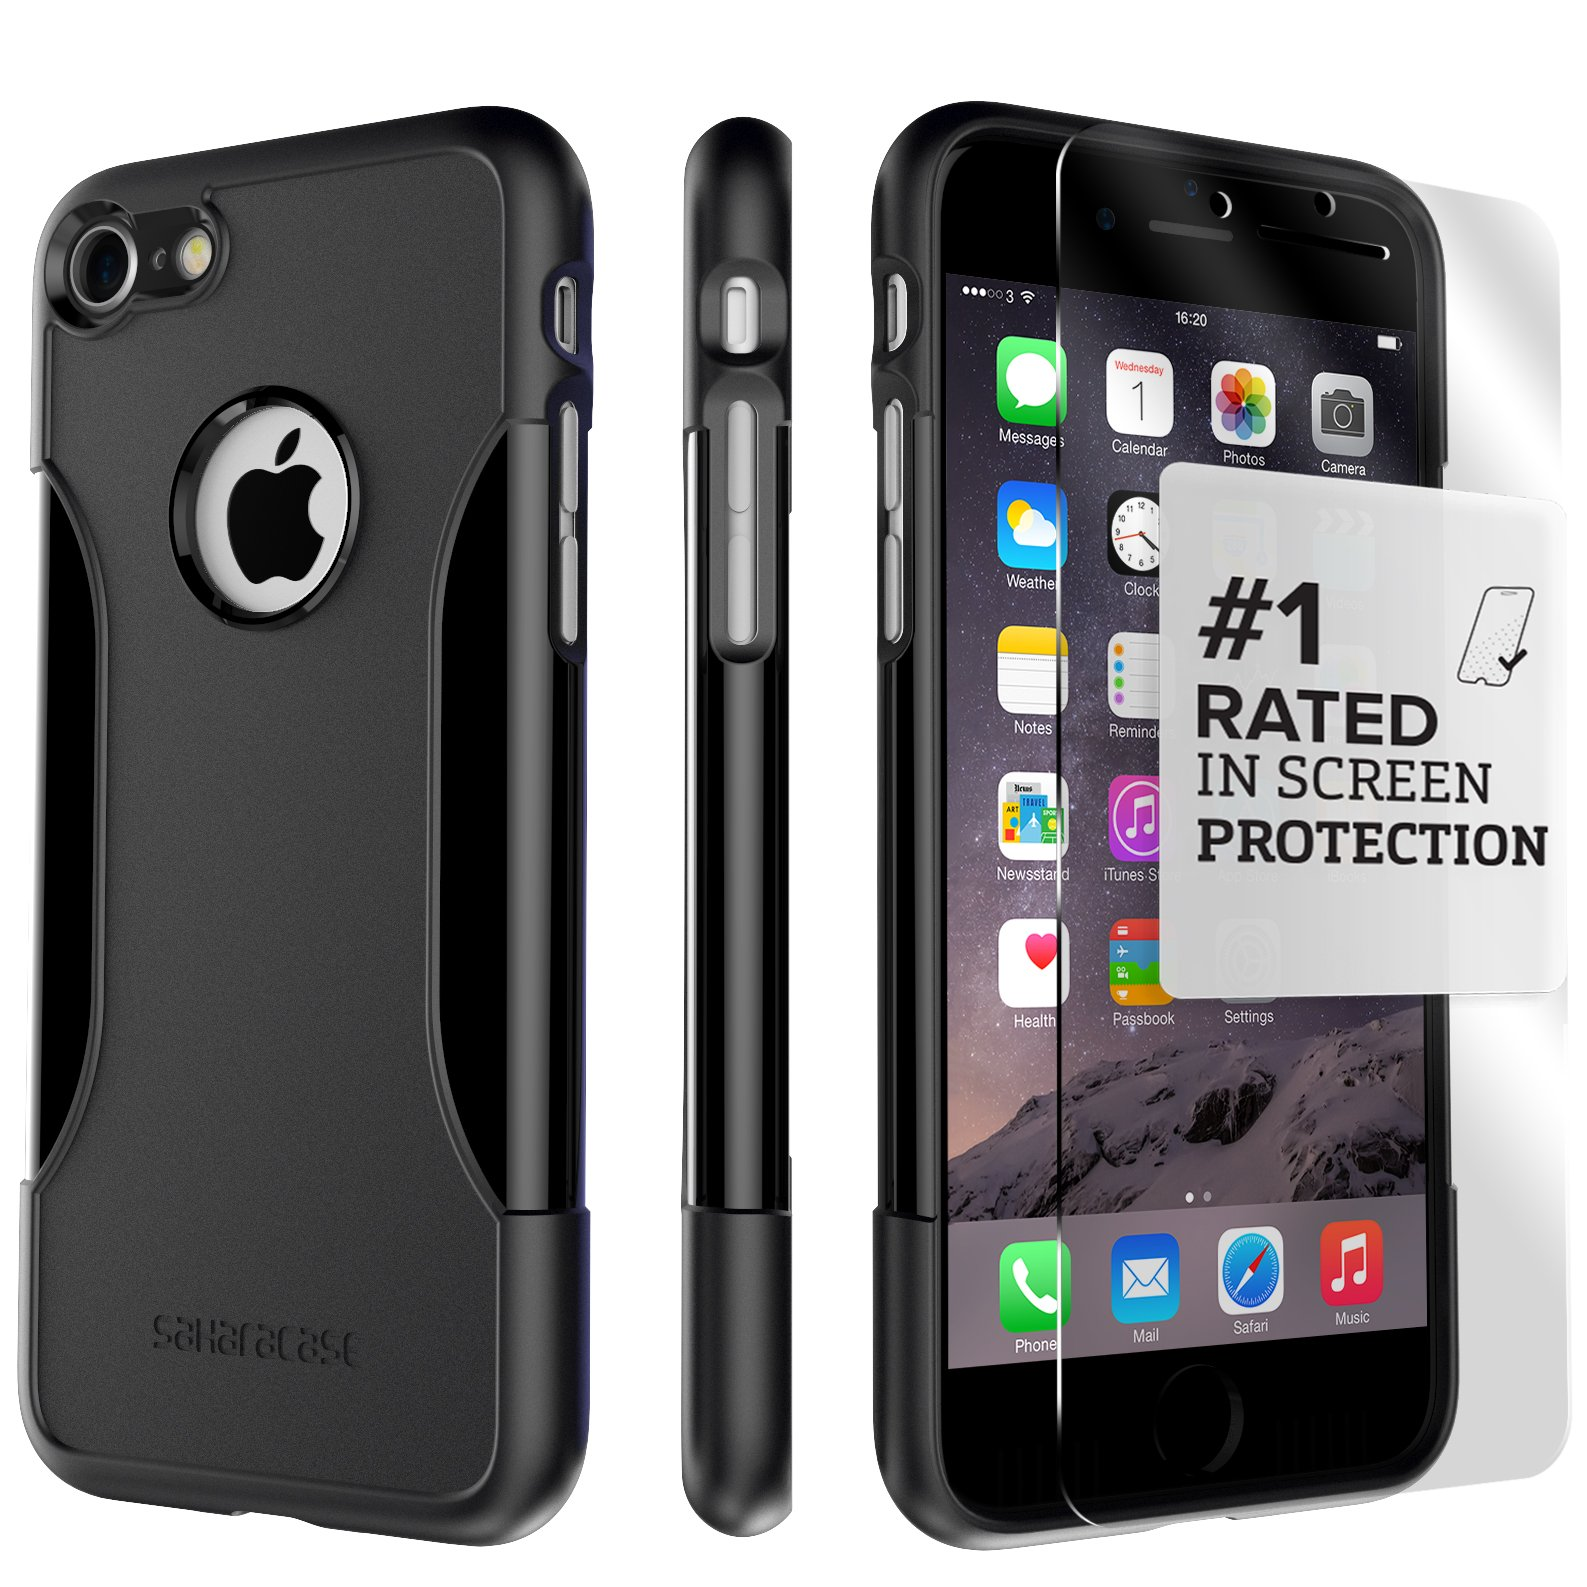 iPhone 8 Case and 7 Case, SaharaCase Protective Kit Bundle with [ZeroDamage Tempered Glass Screen Protector] Rugged Protection Anti-Slip Grip [Shockproof Bumper] Slim Fit - Black